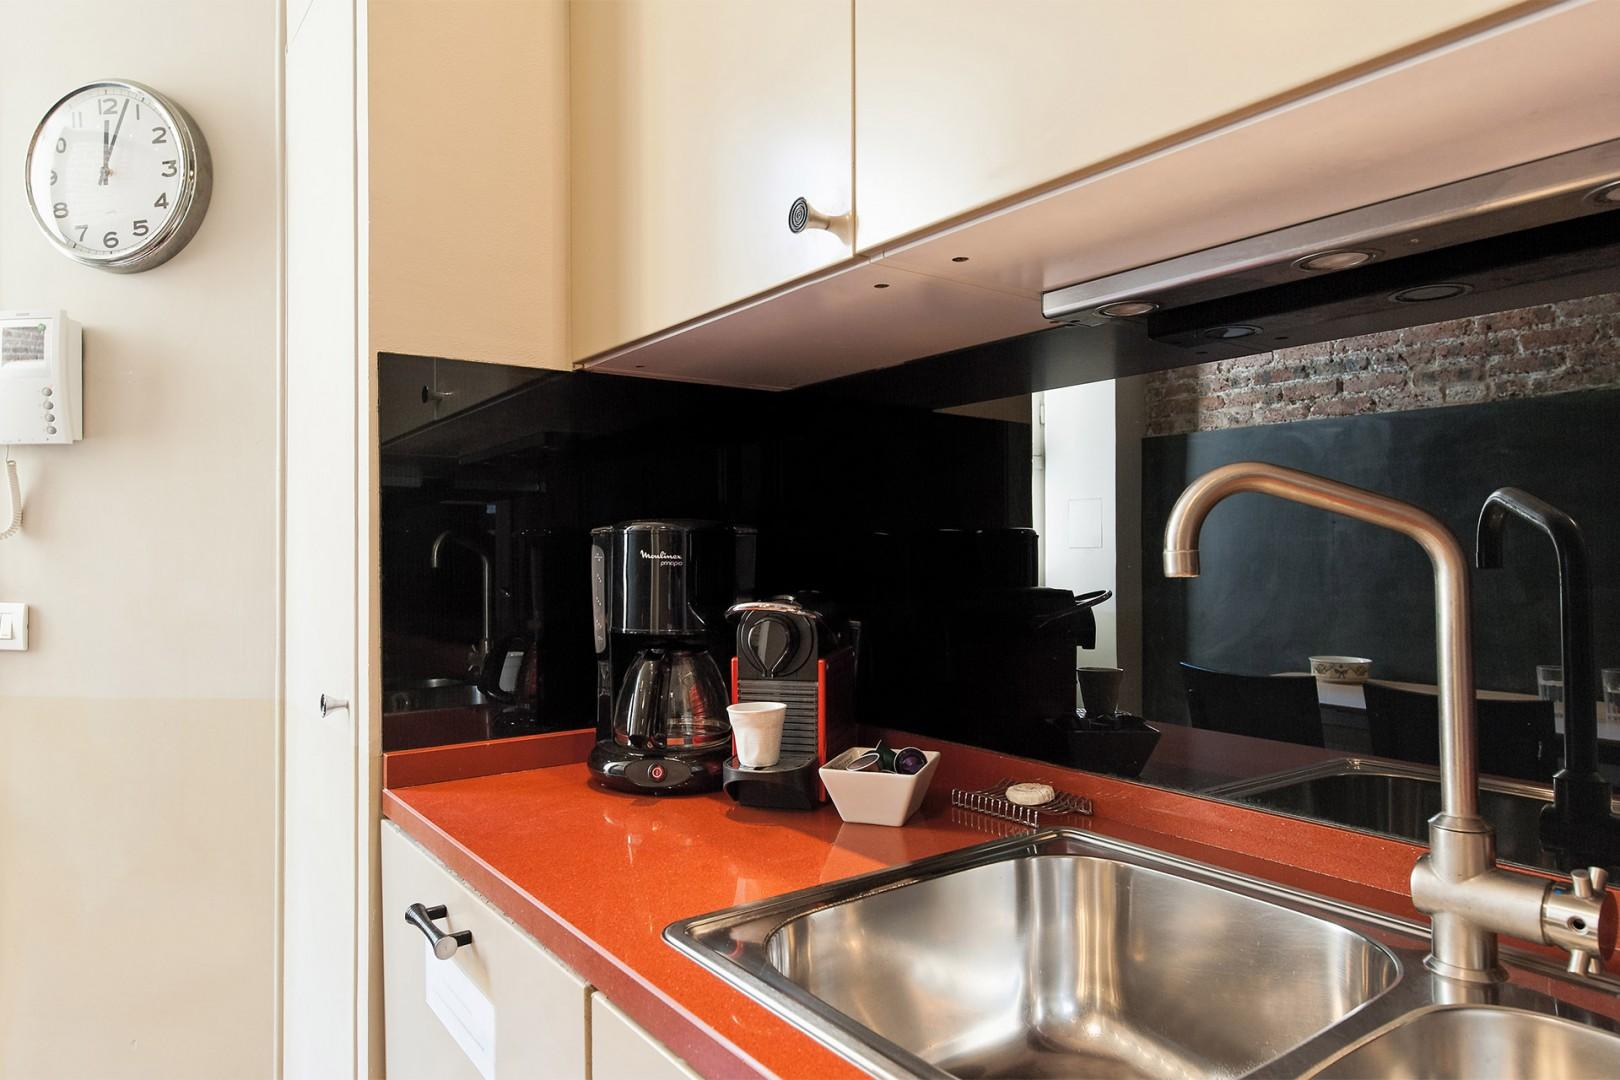 Guests love having a dishwasher and Nespresso maker!